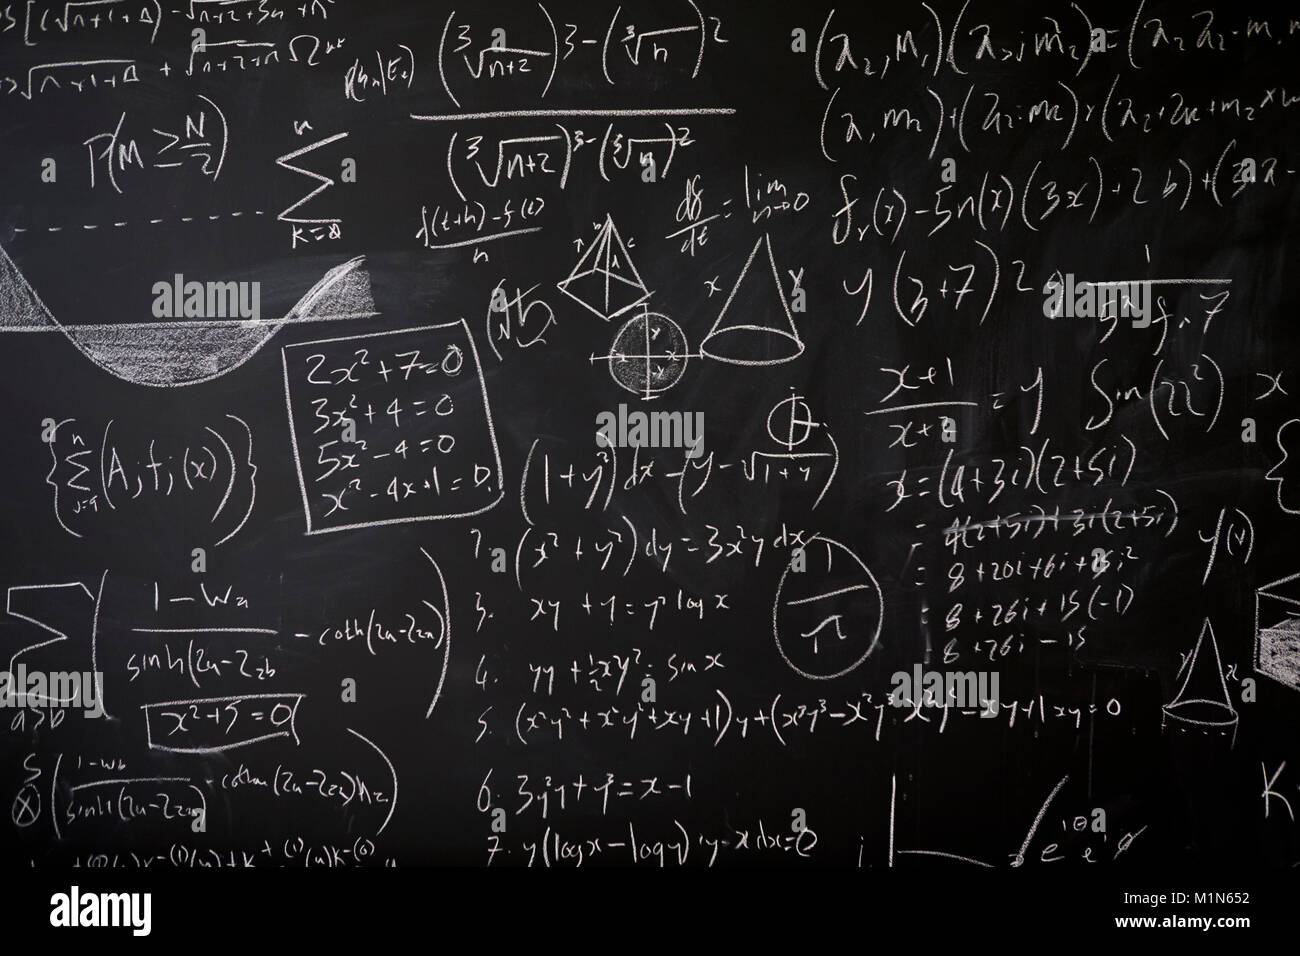 Blackboard with maths statistics, equations and ideas - Stock Image